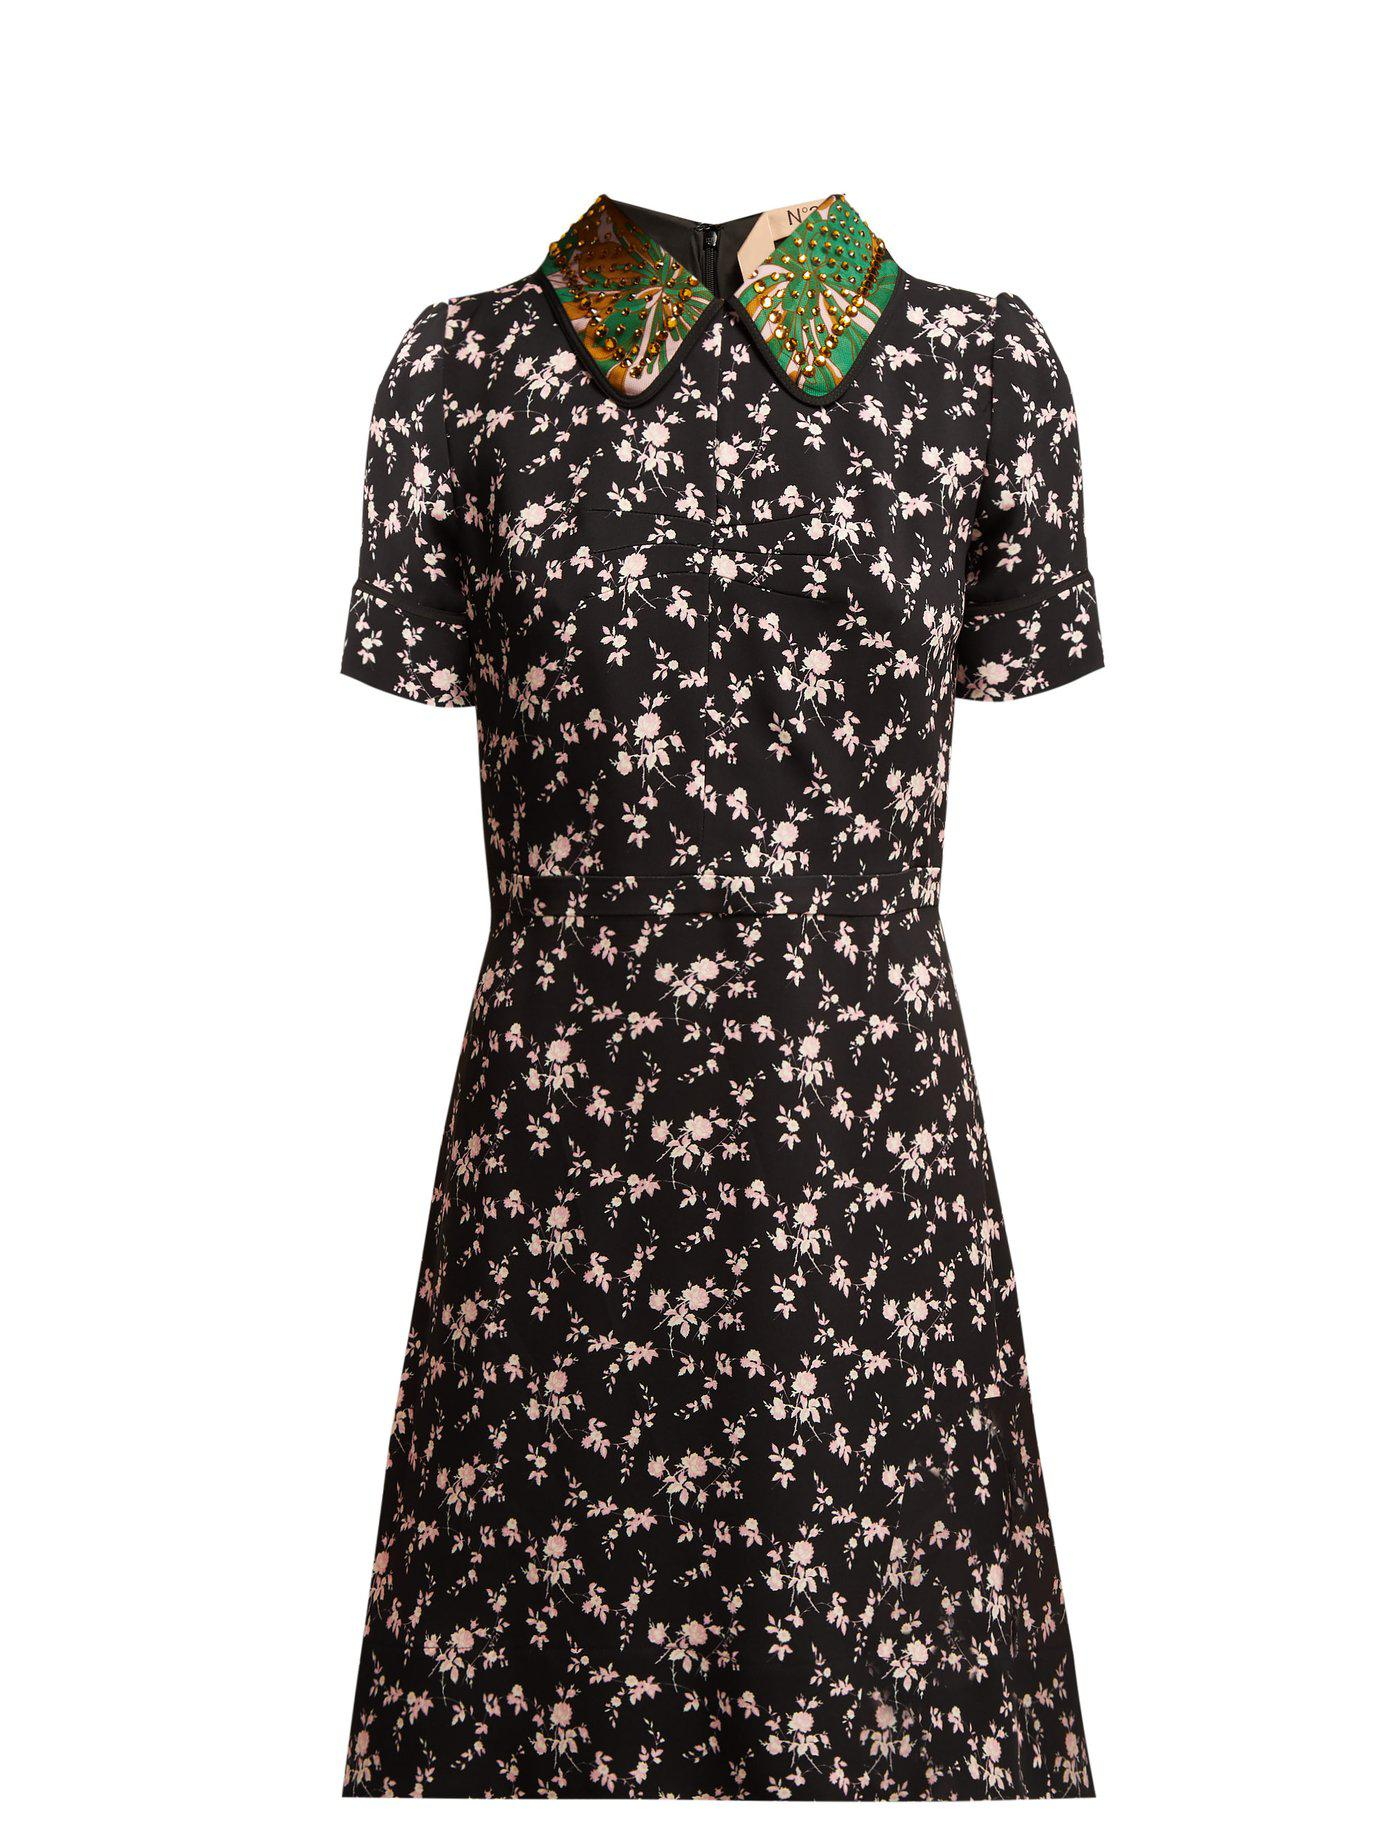 403ef27aeb3 n21-black-multi-Stampa-Floral-Print-Dress.jpeg